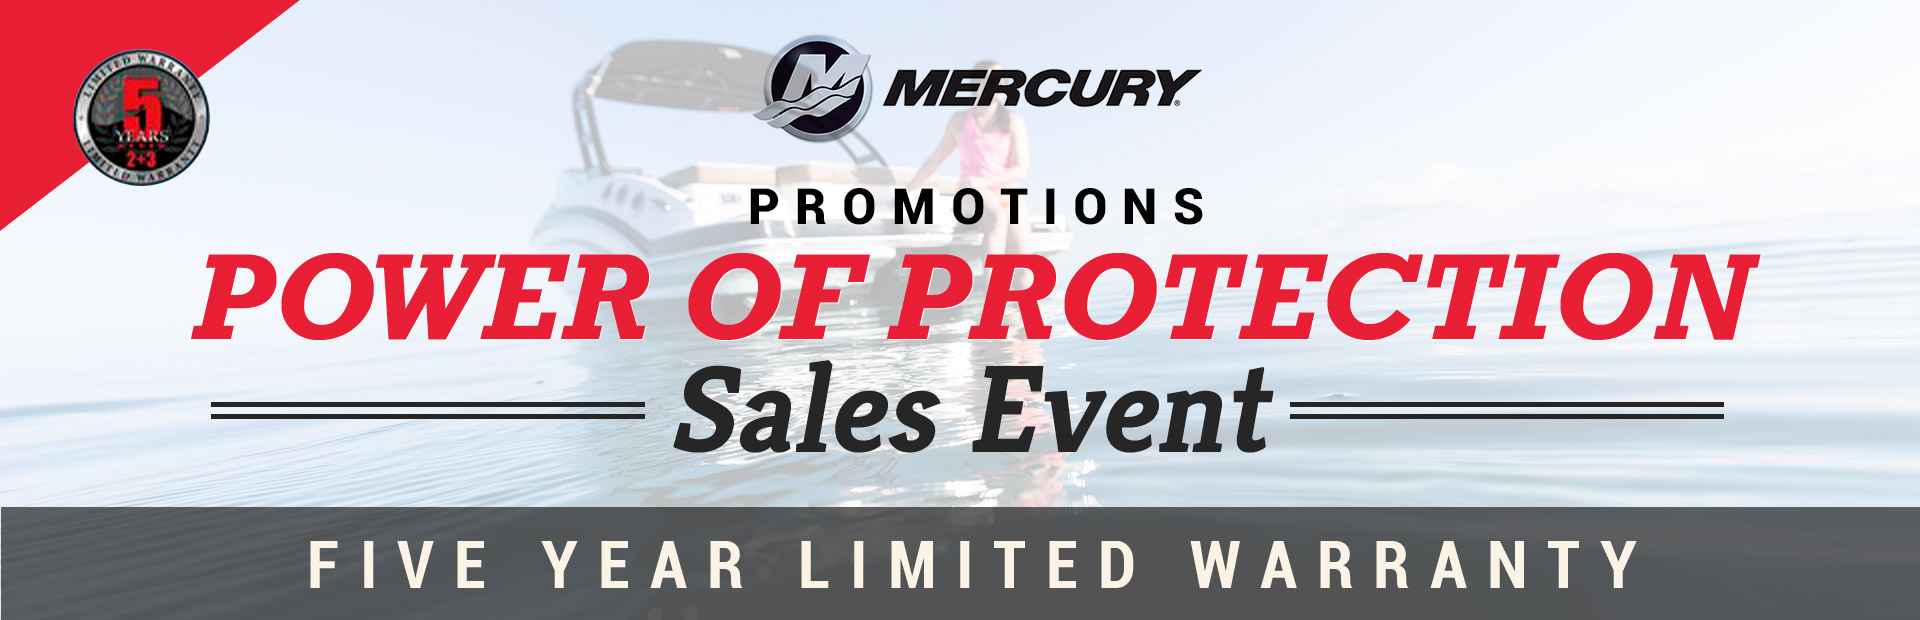 Mercury - Power of Protection Sales Event Bryce Marine Rochester, NY